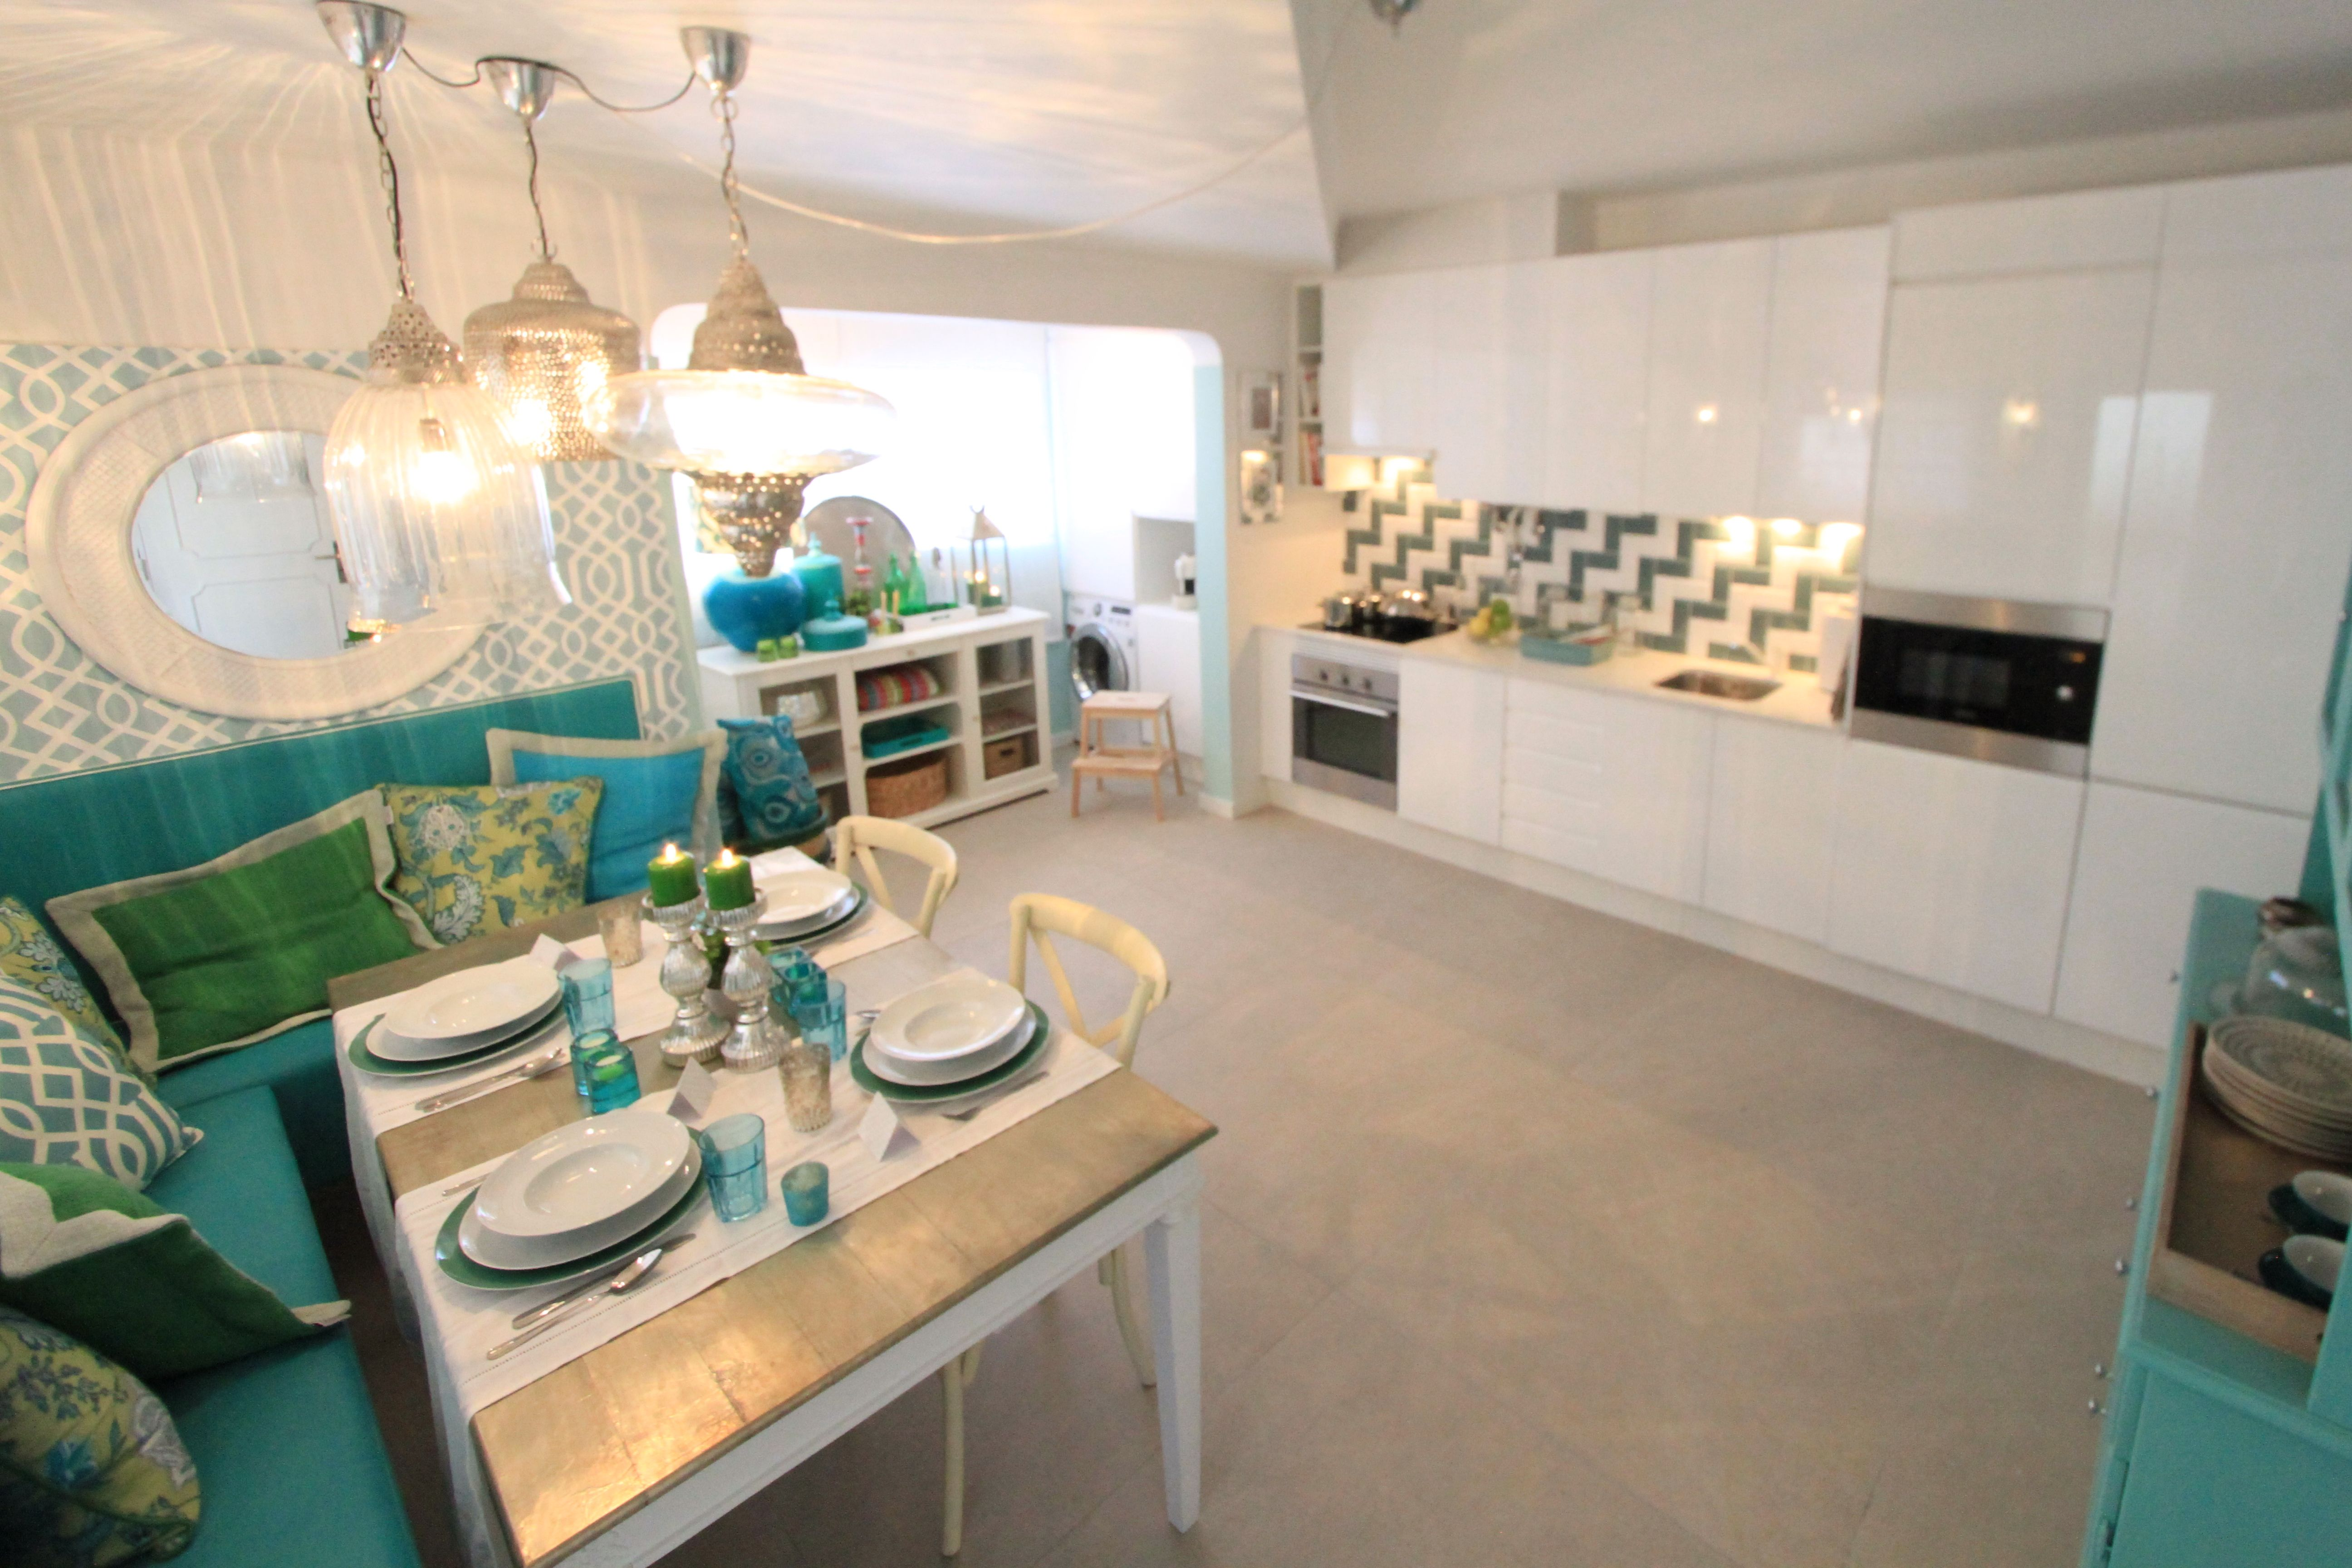 Morocan inspired kitchen project by ana antunes for house makeover show turquoise green